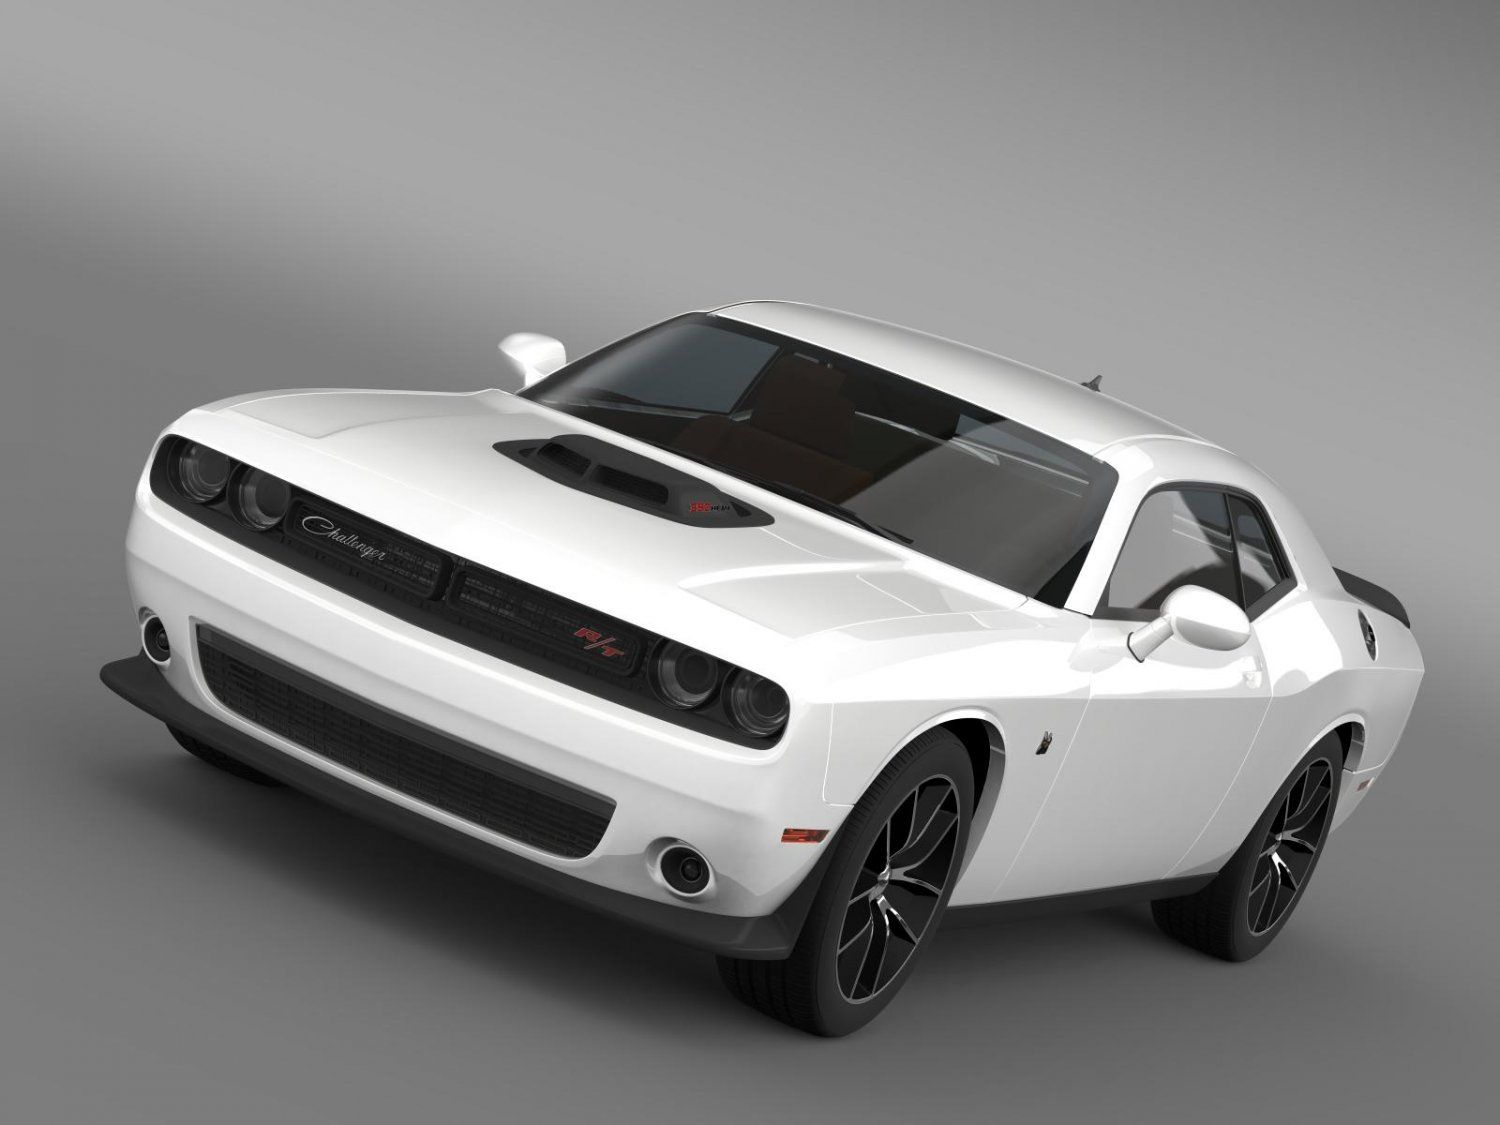 241 best dodge challenger images on pinterest | mopar, dream cars